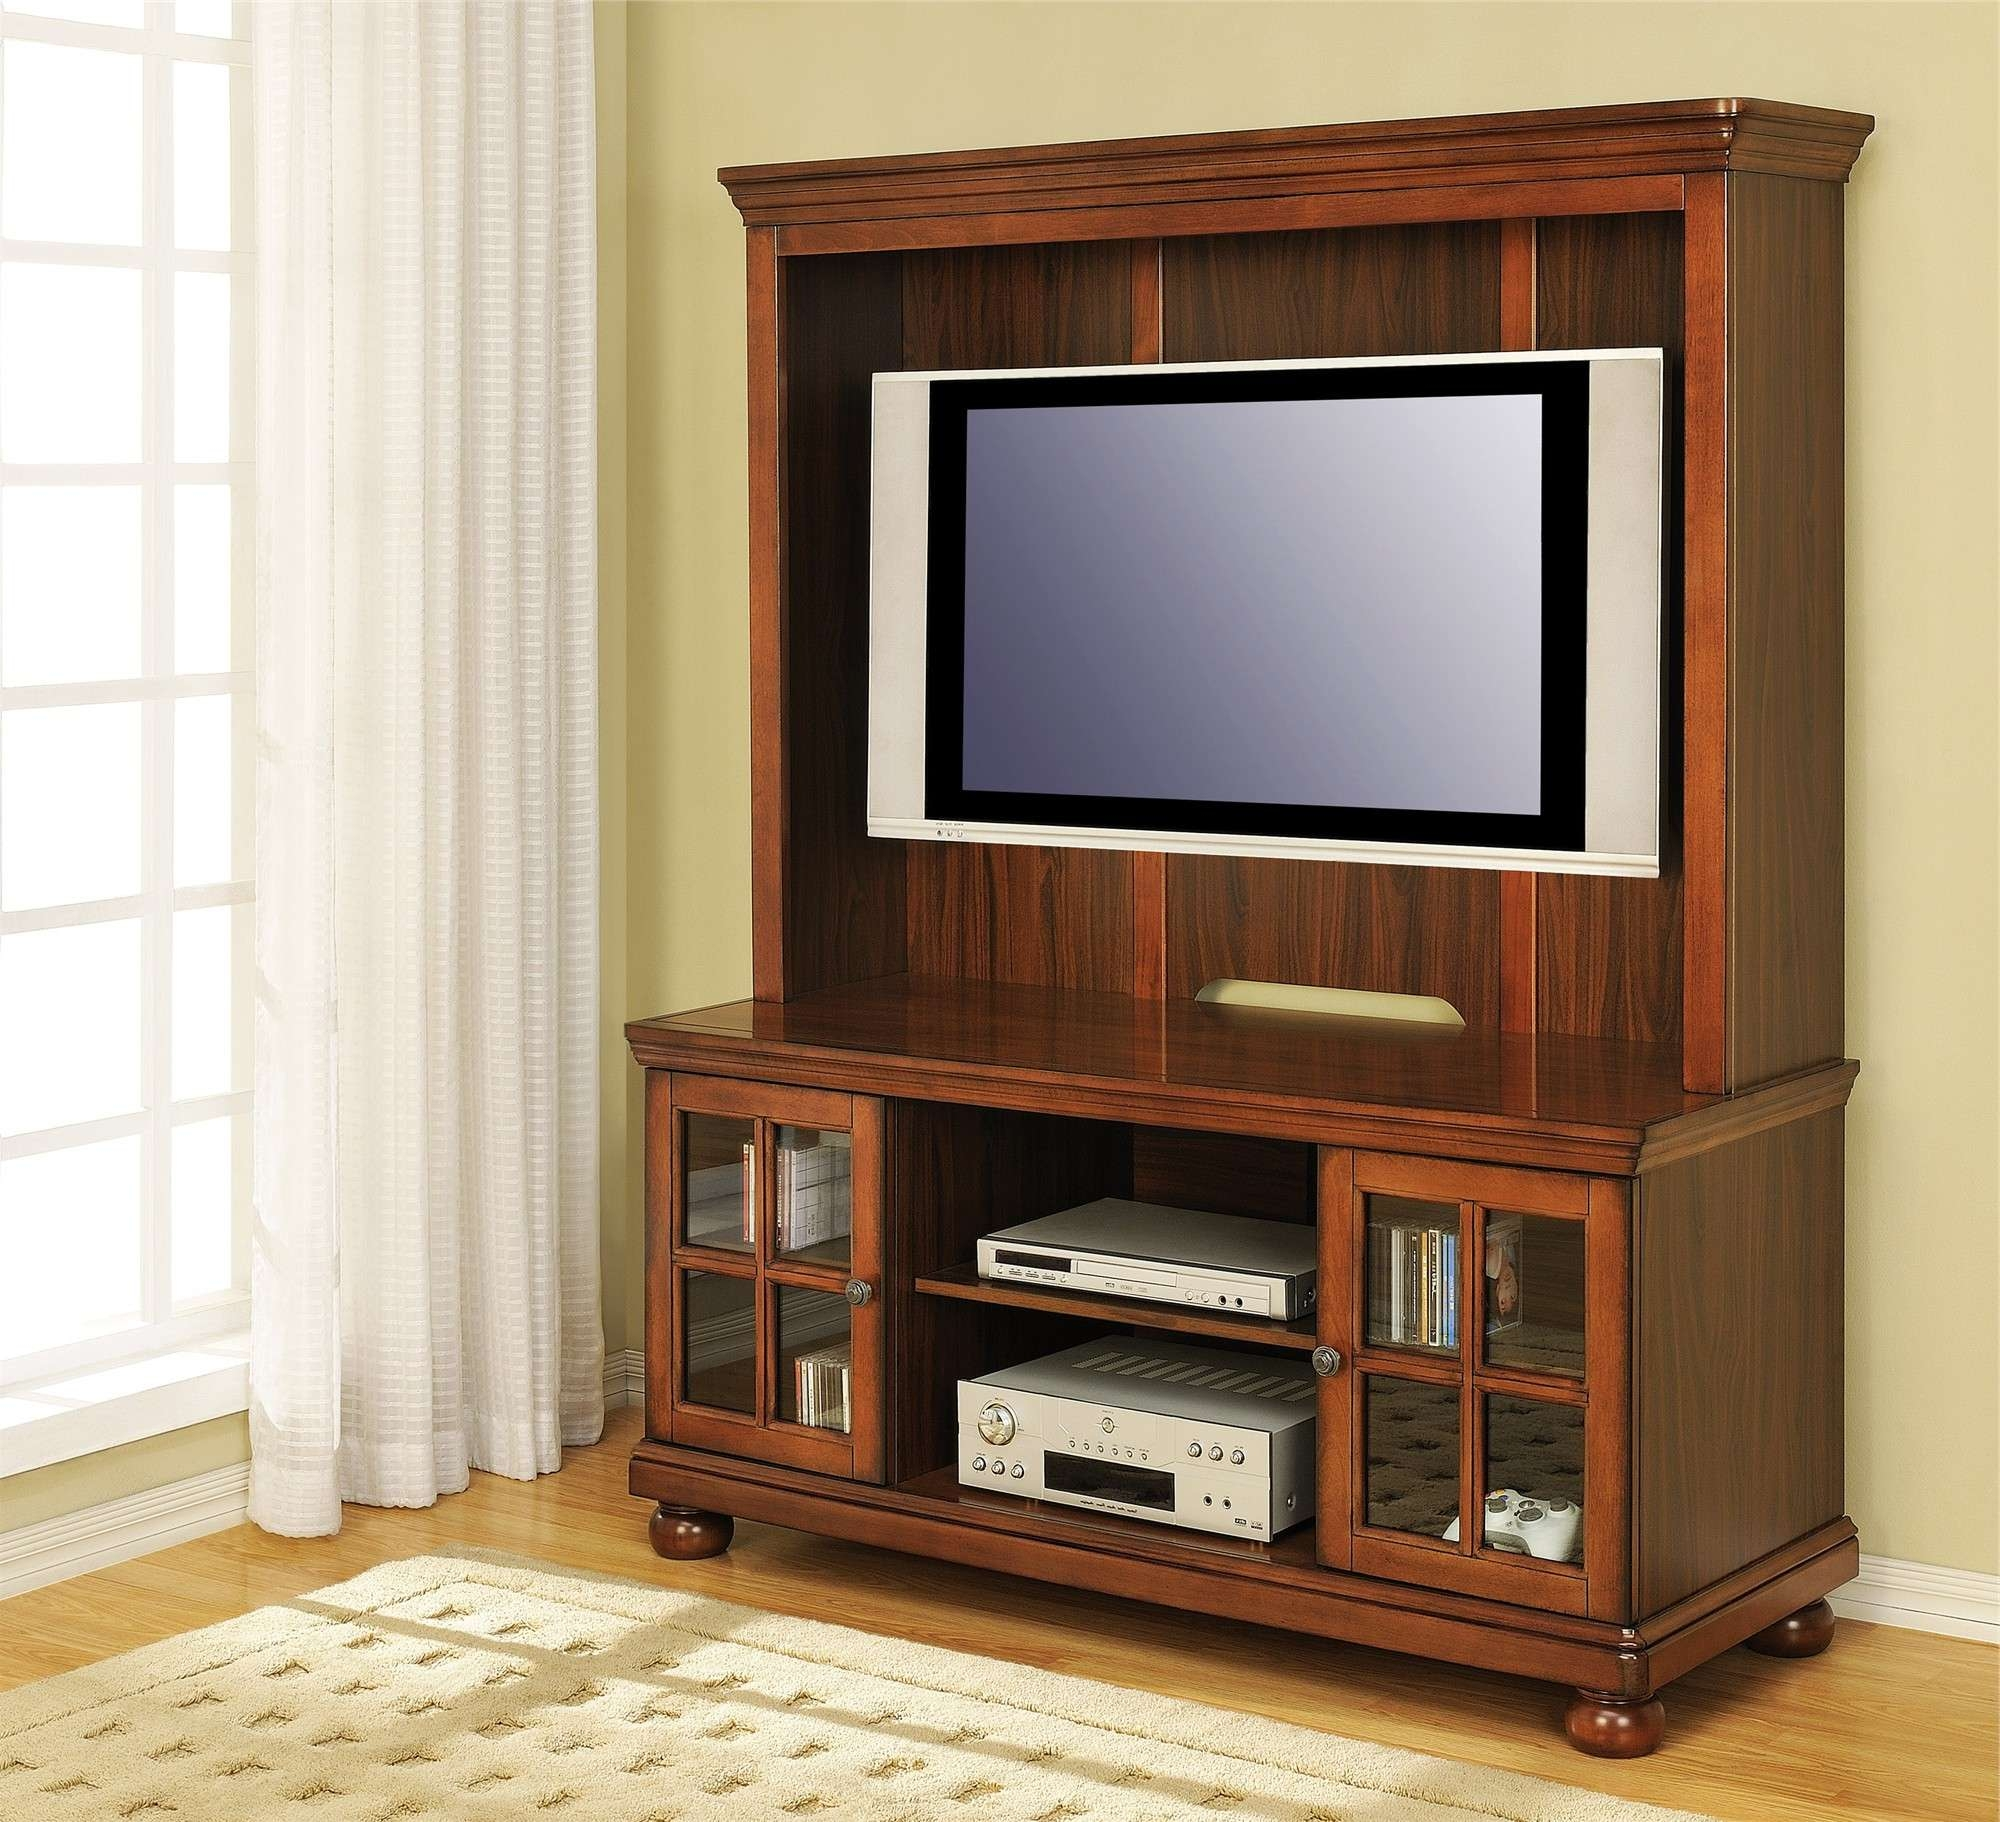 Brown Wooden Cabinet With Glass Door And Rectangle White Flat Pertaining To Wood And Glass Tv Stands For Flat Screens (View 9 of 20)